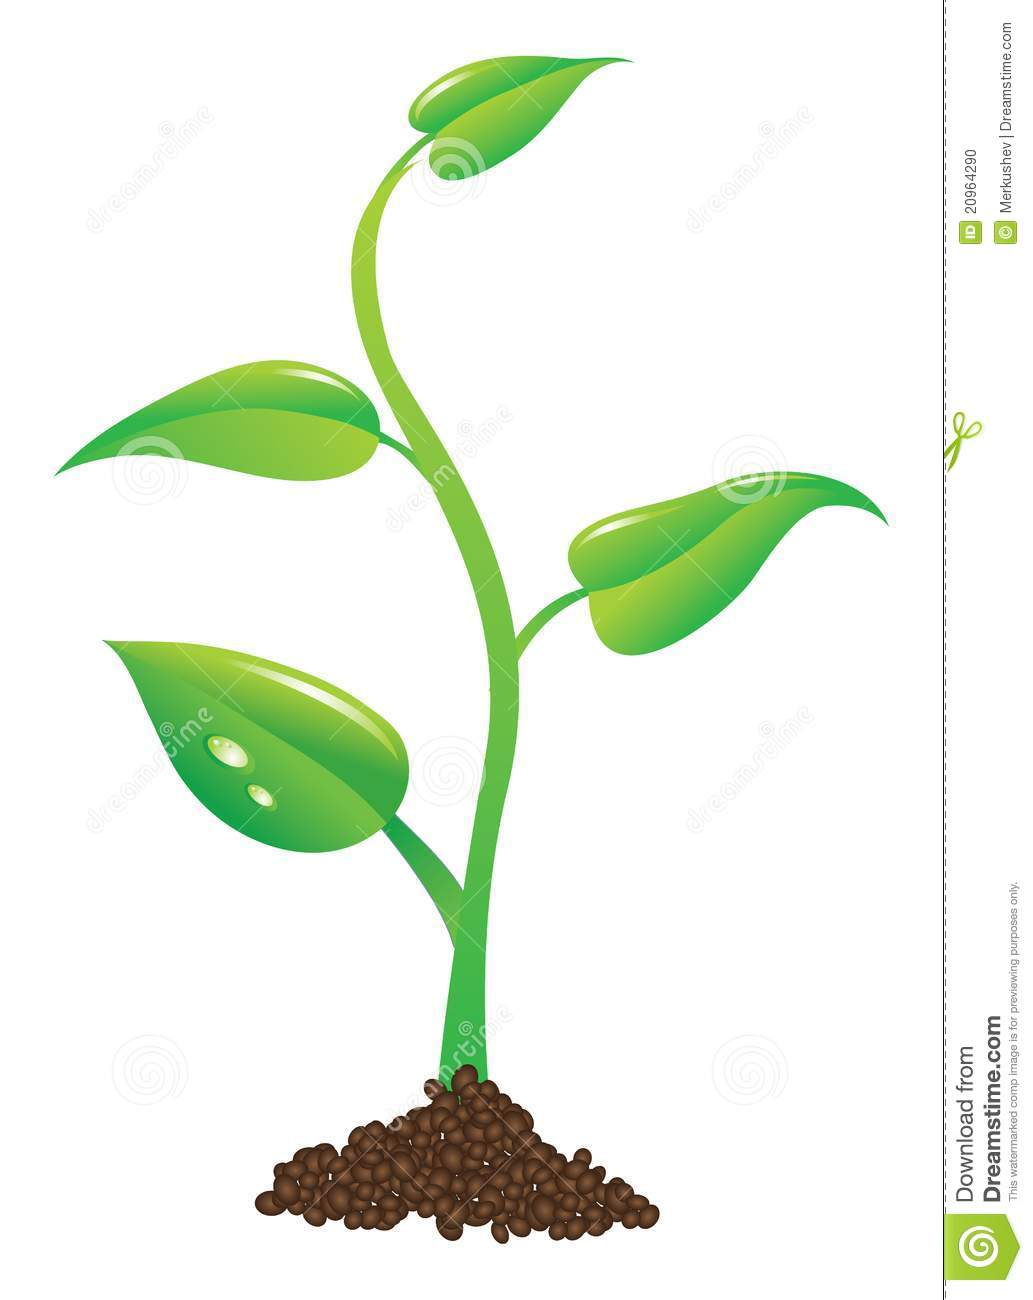 clipart of plants - photo #32